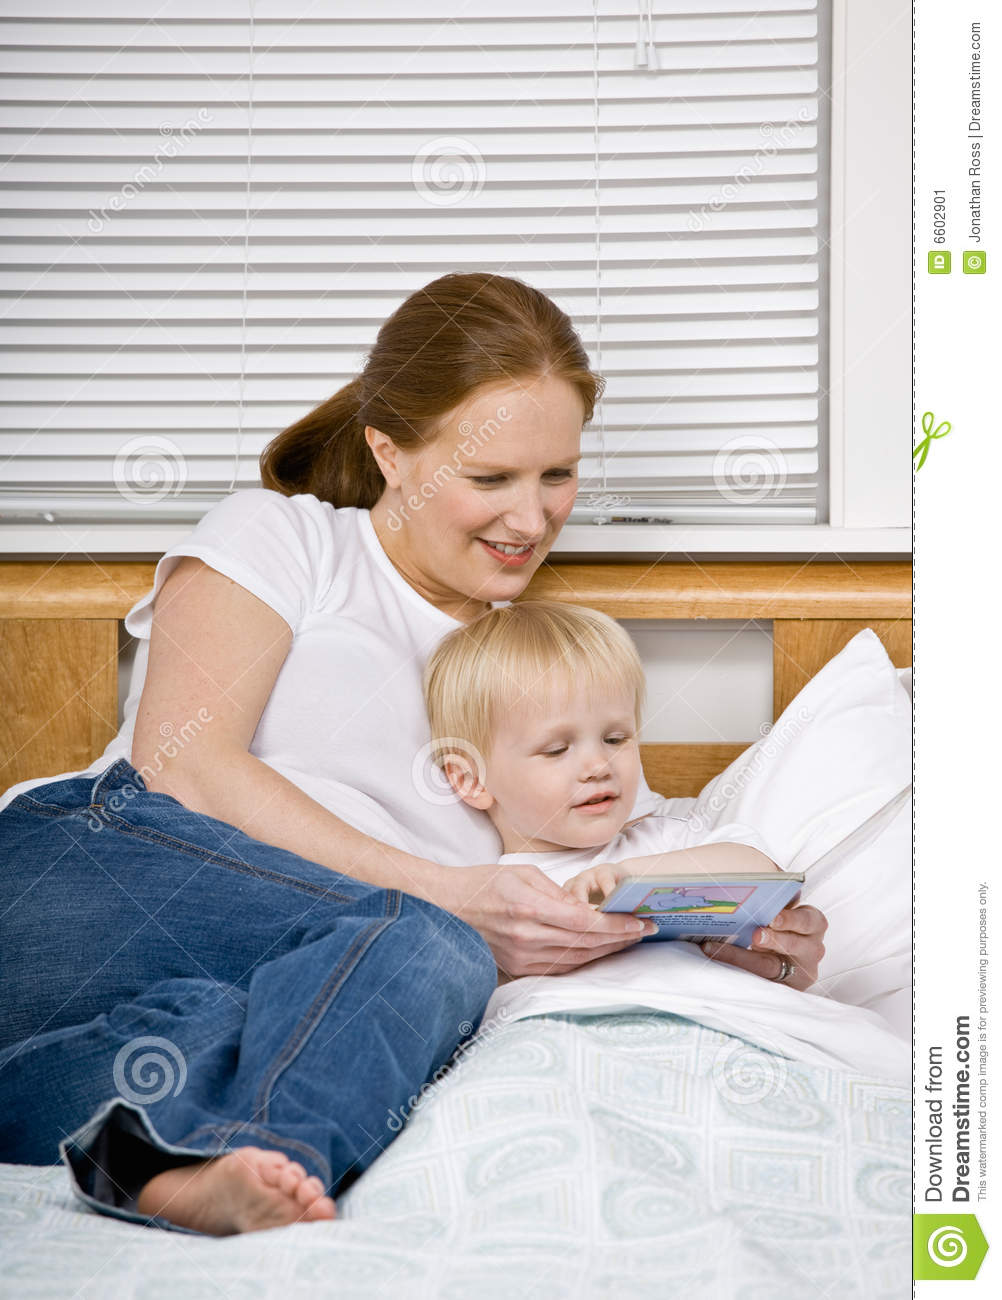 mother reading son a bedtime story in bed stock image image 6602901. Black Bedroom Furniture Sets. Home Design Ideas